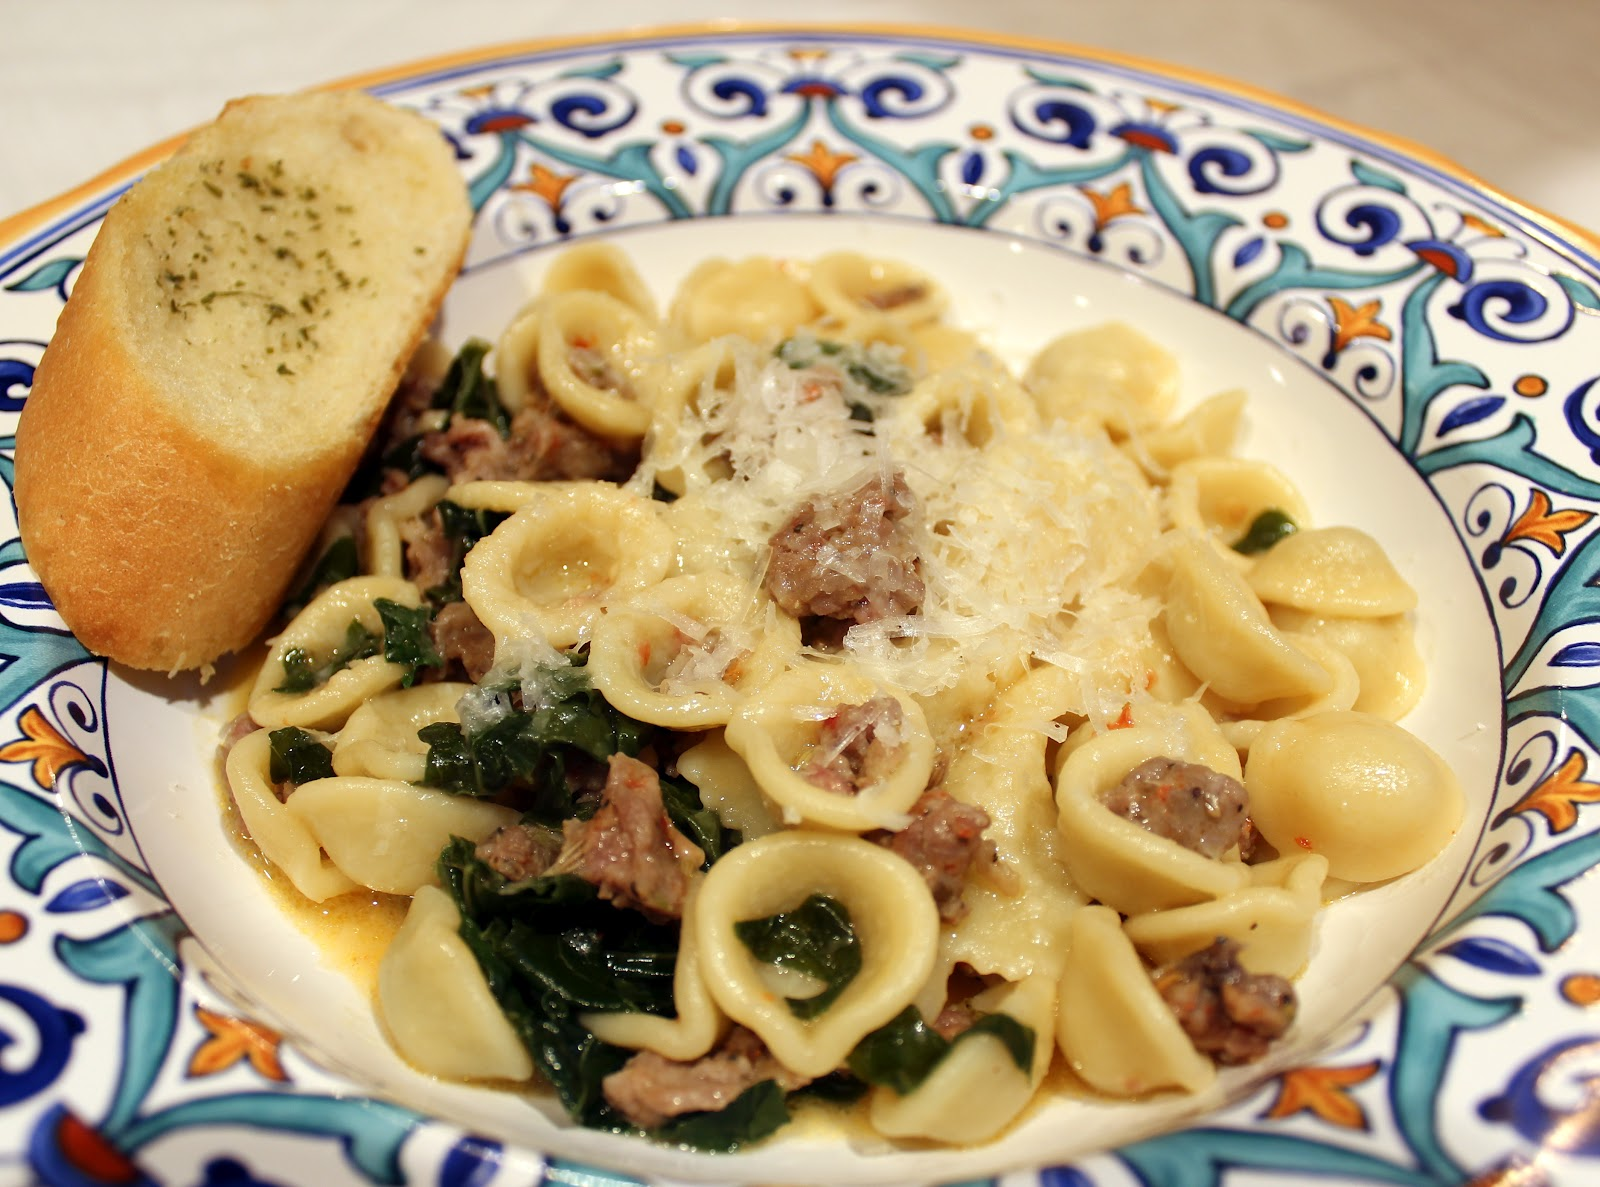 Dinner Delish: Orecchiette Pasta with Sausage and Kale